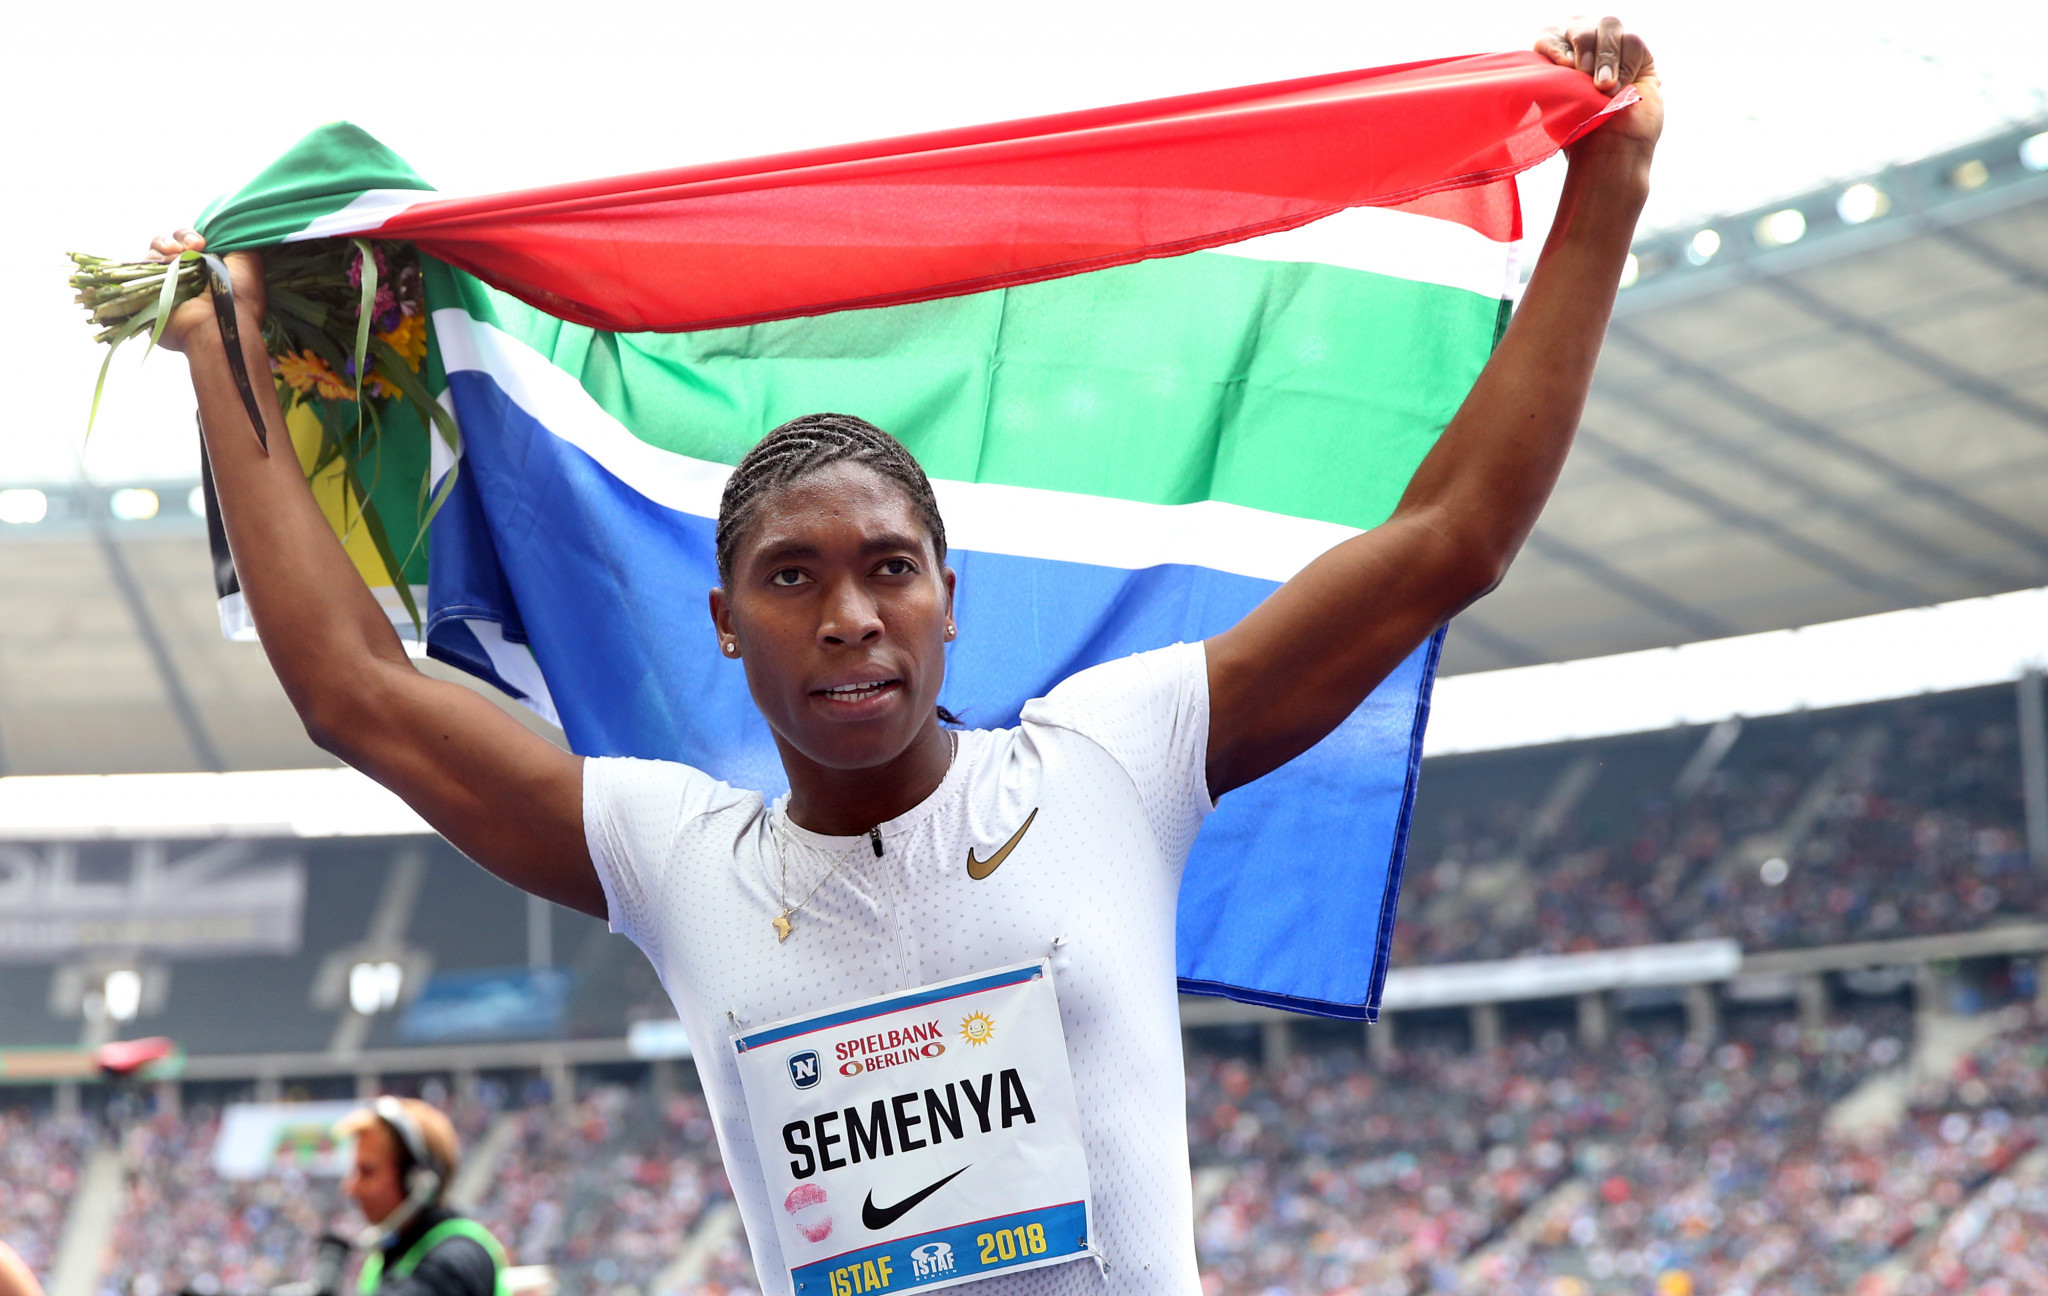 If Caster Semenya loses her appeal against the IAAF ruling at the Court of Arbitration for Sport in Lausanne she will have to take medication to reduce her testosterone levels or compete against men ©Getty Images